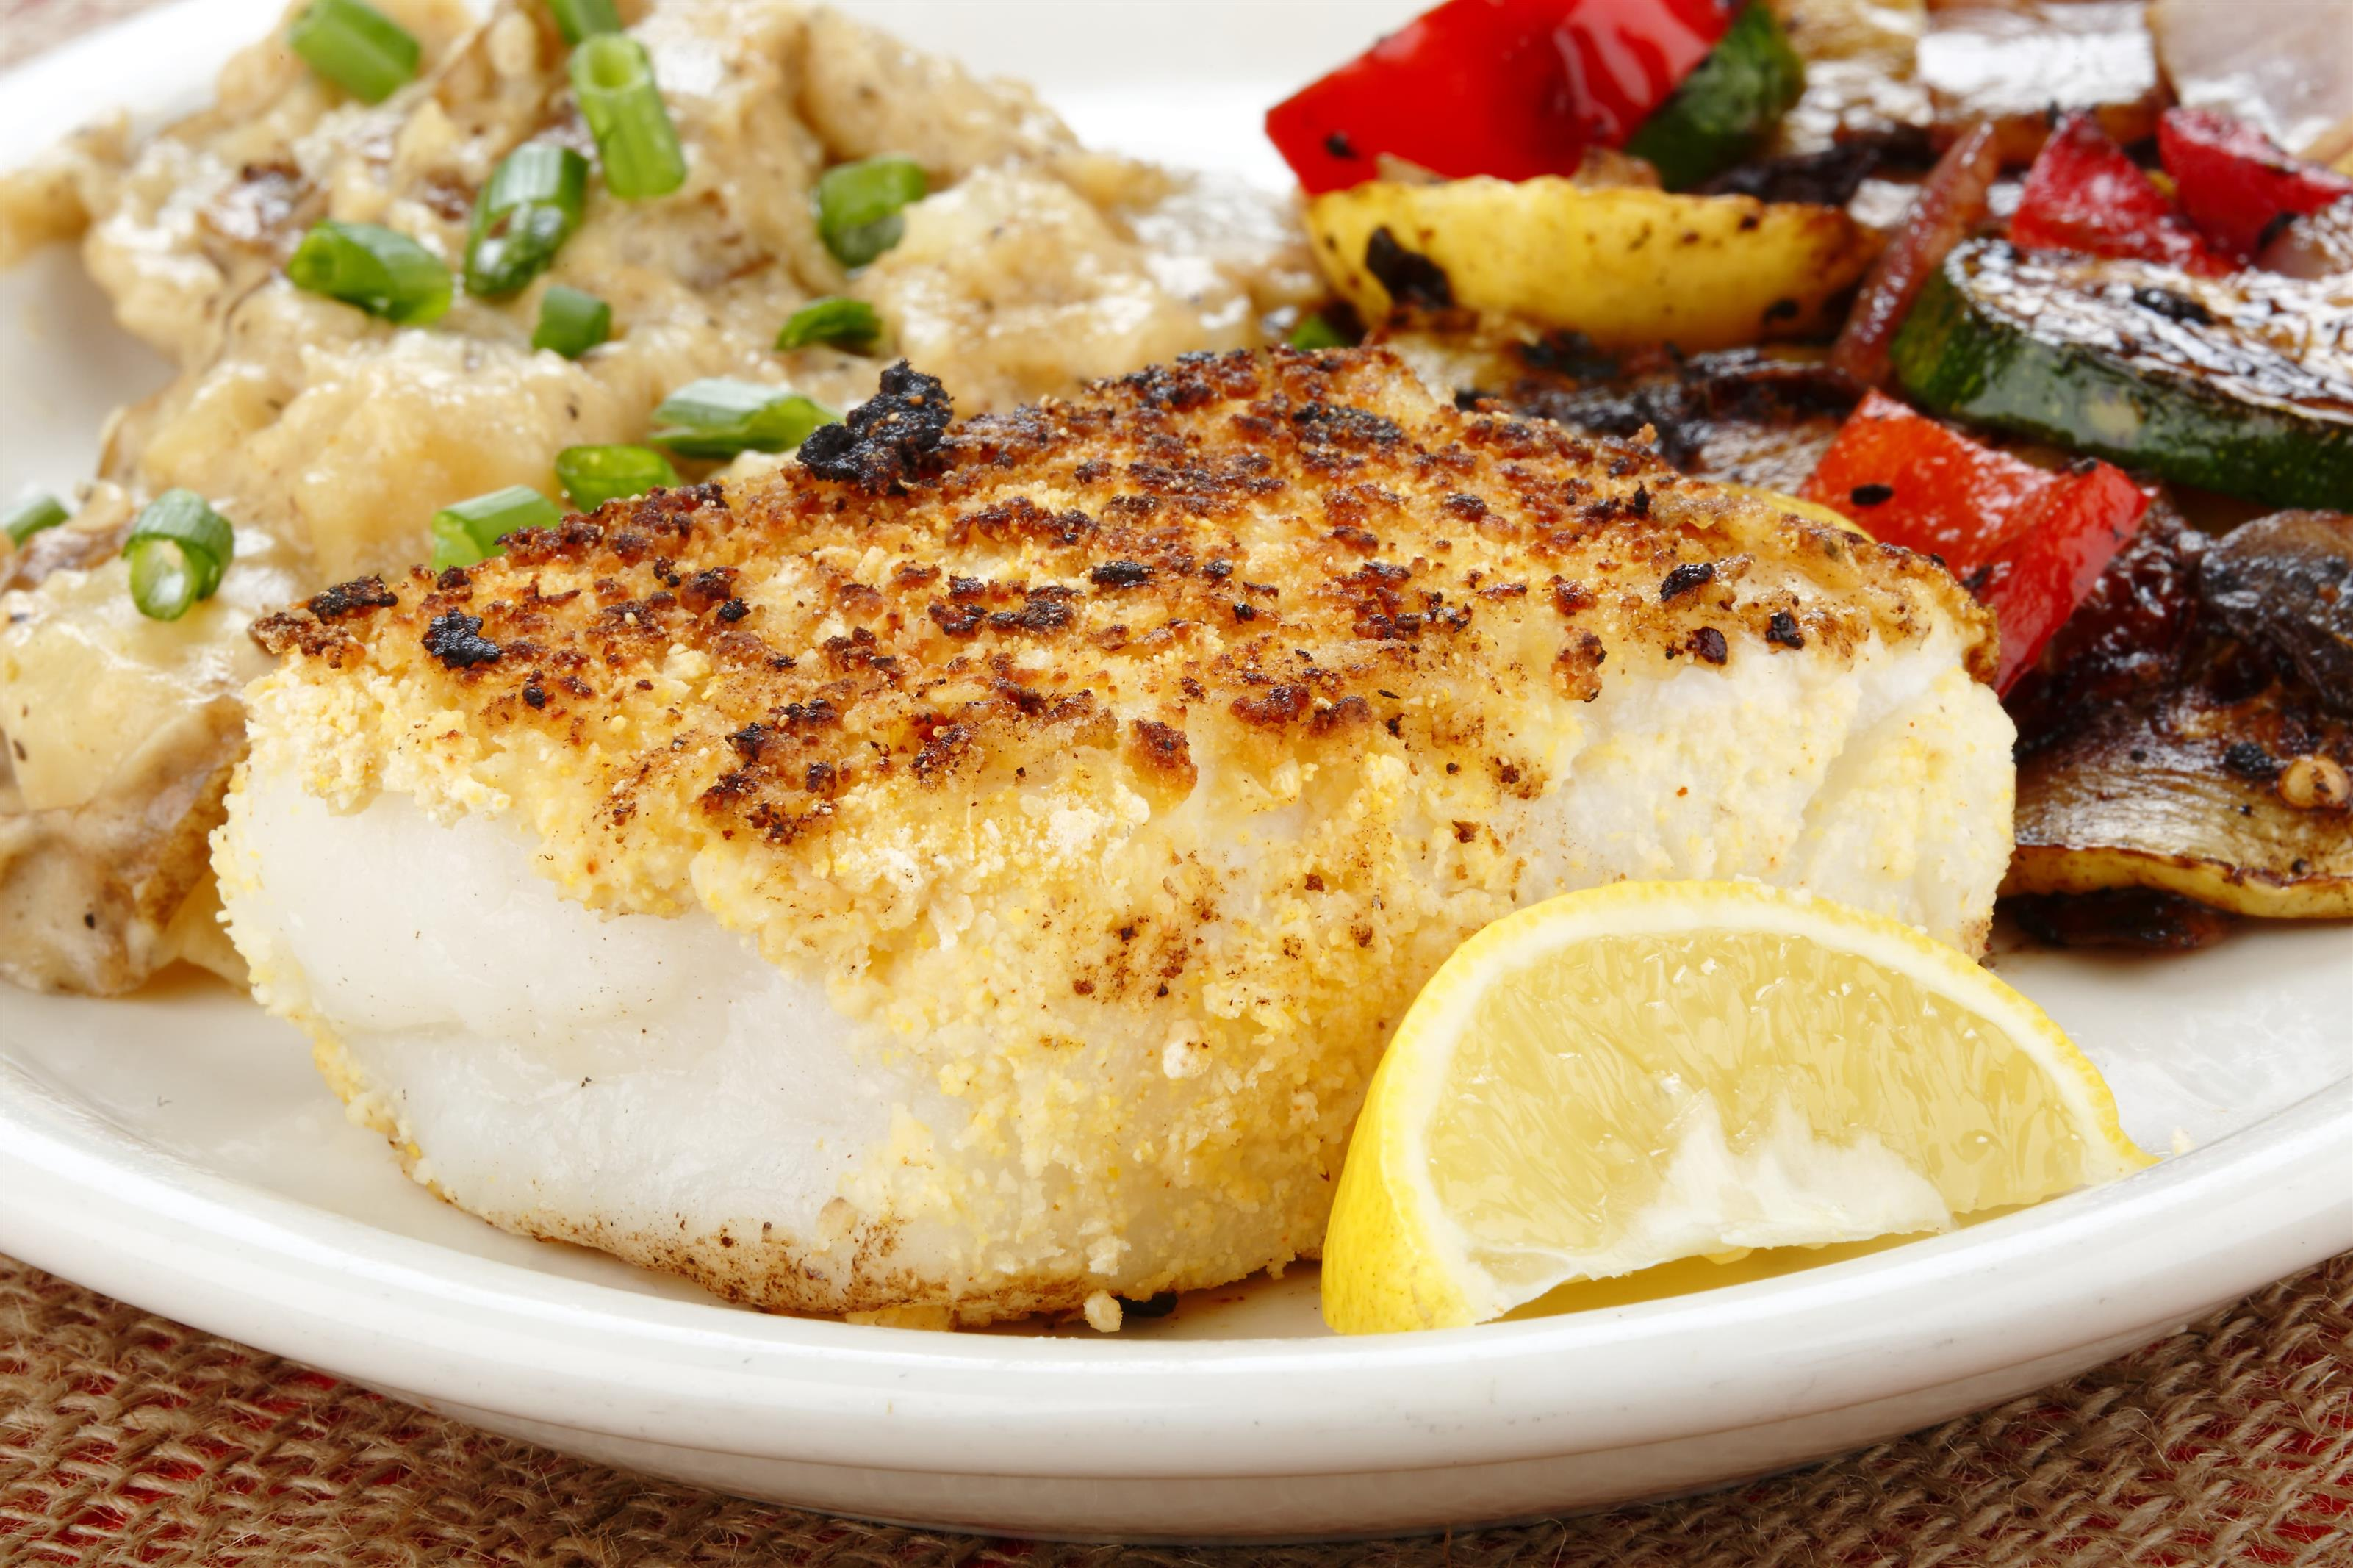 Sea bass filet with potatoes and grilled vegetables